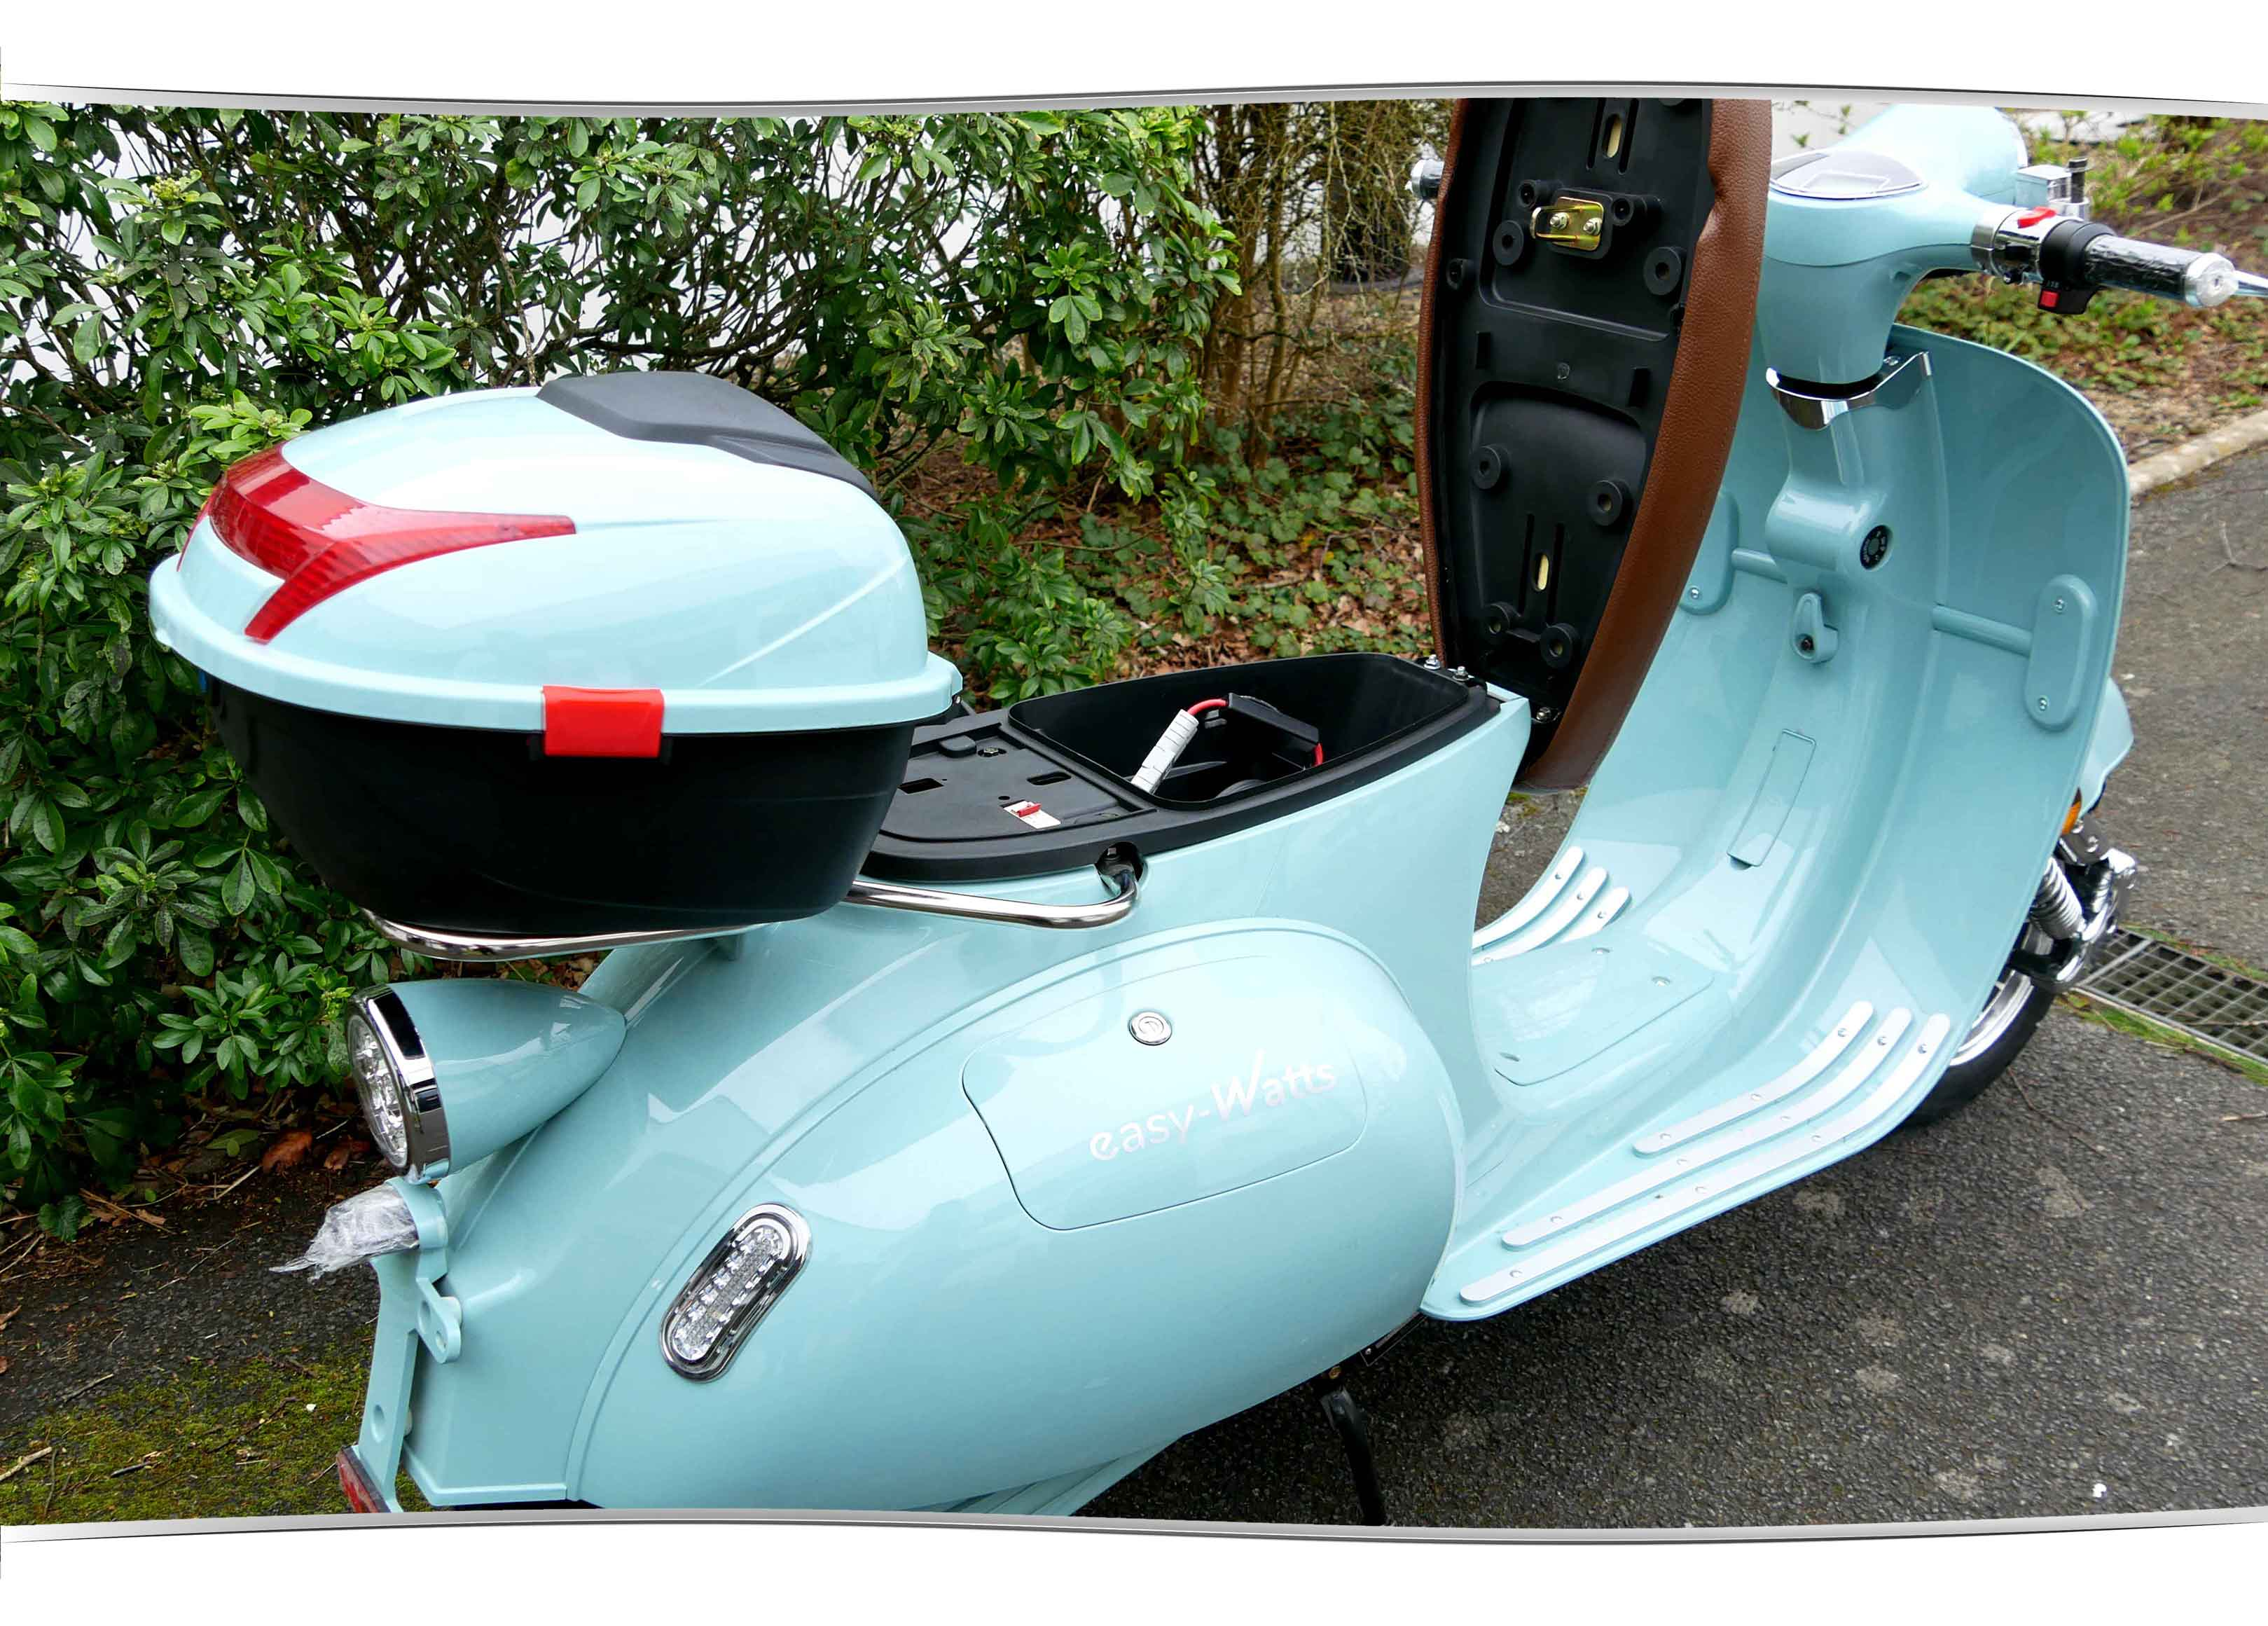 Scooter électrique e-retro batterie au lithium -plan large